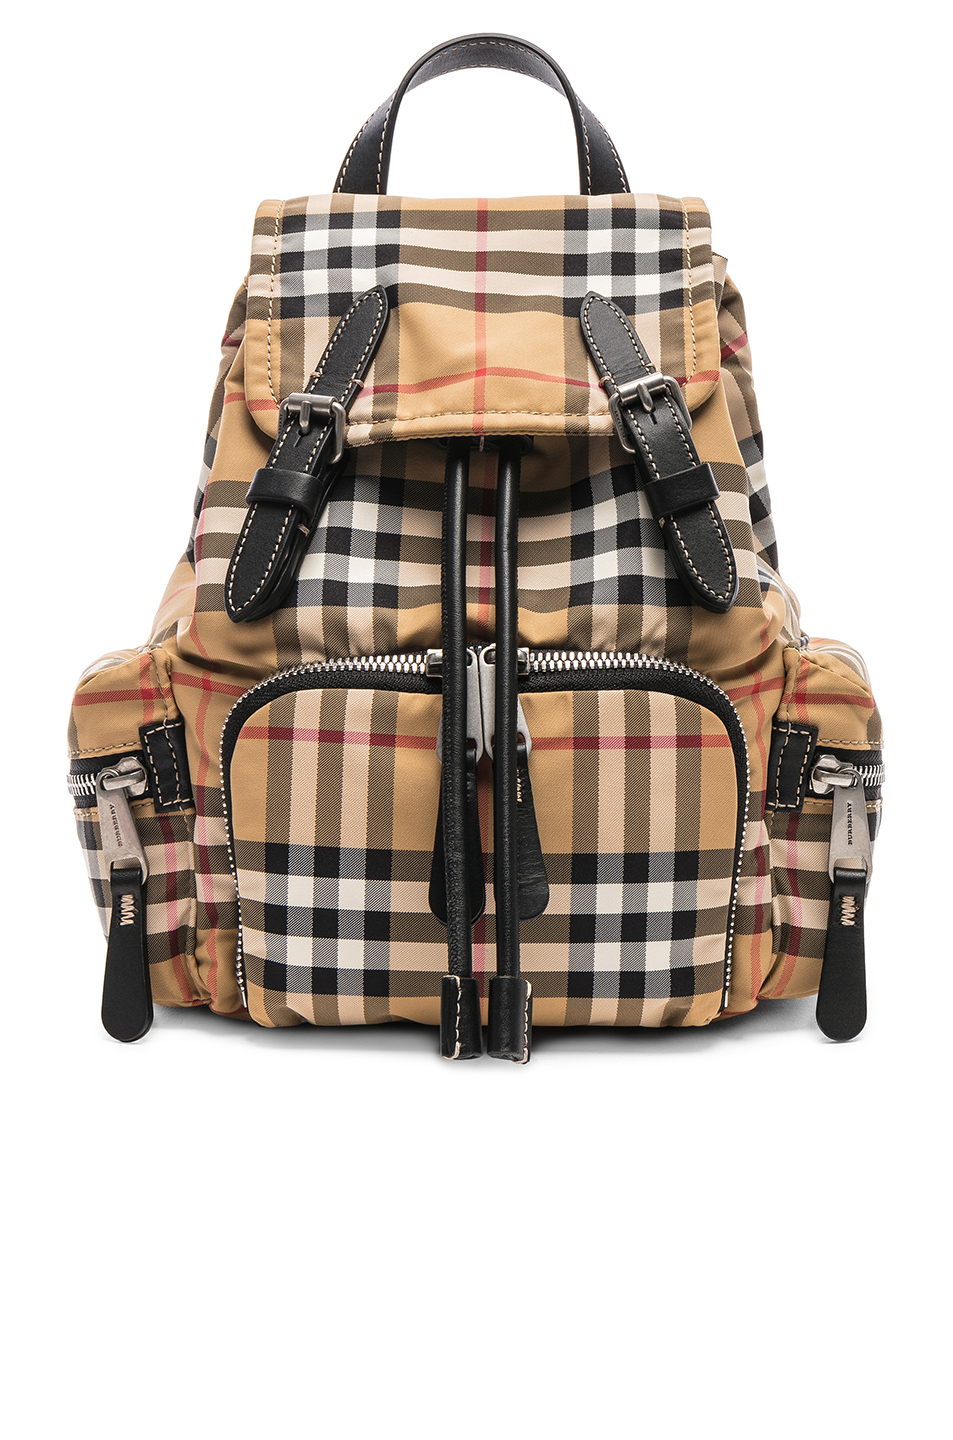 a388b5d586a4 Burberry Small Vintage Check Backpack  Burberry Small Vintage Check  Backpack ...